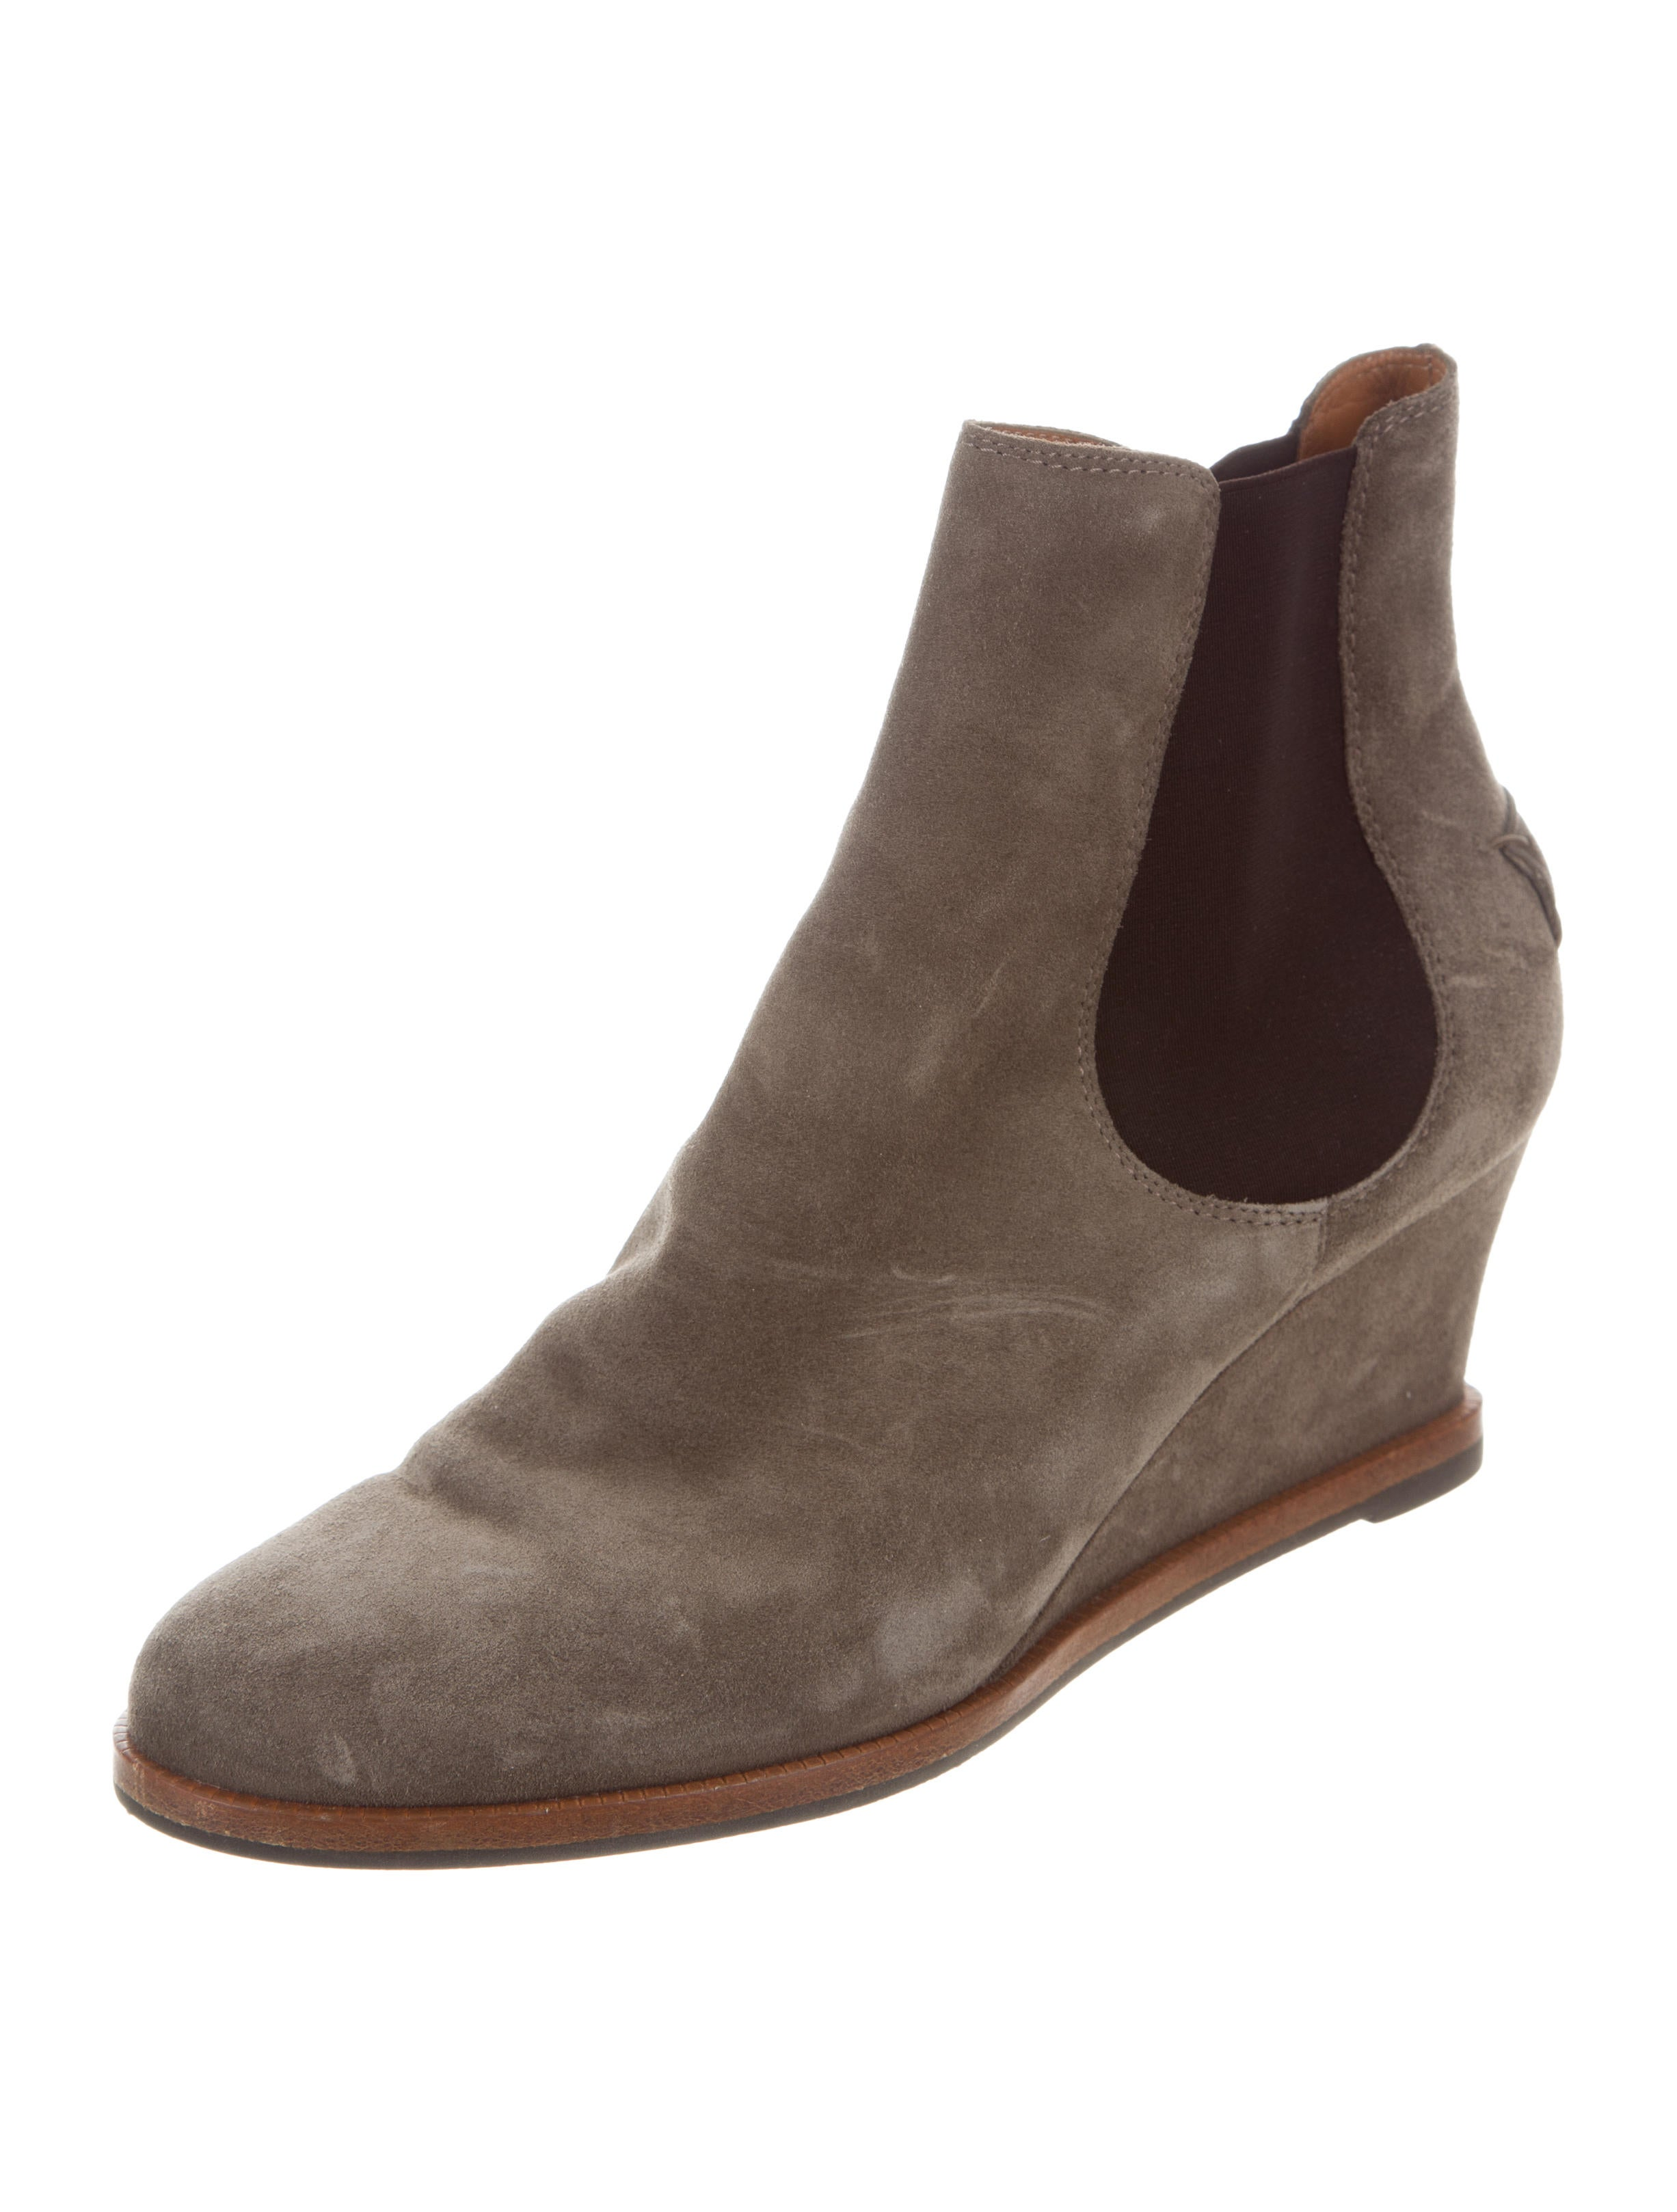 fendi suede wedge ankle boots shoes fen60001 the